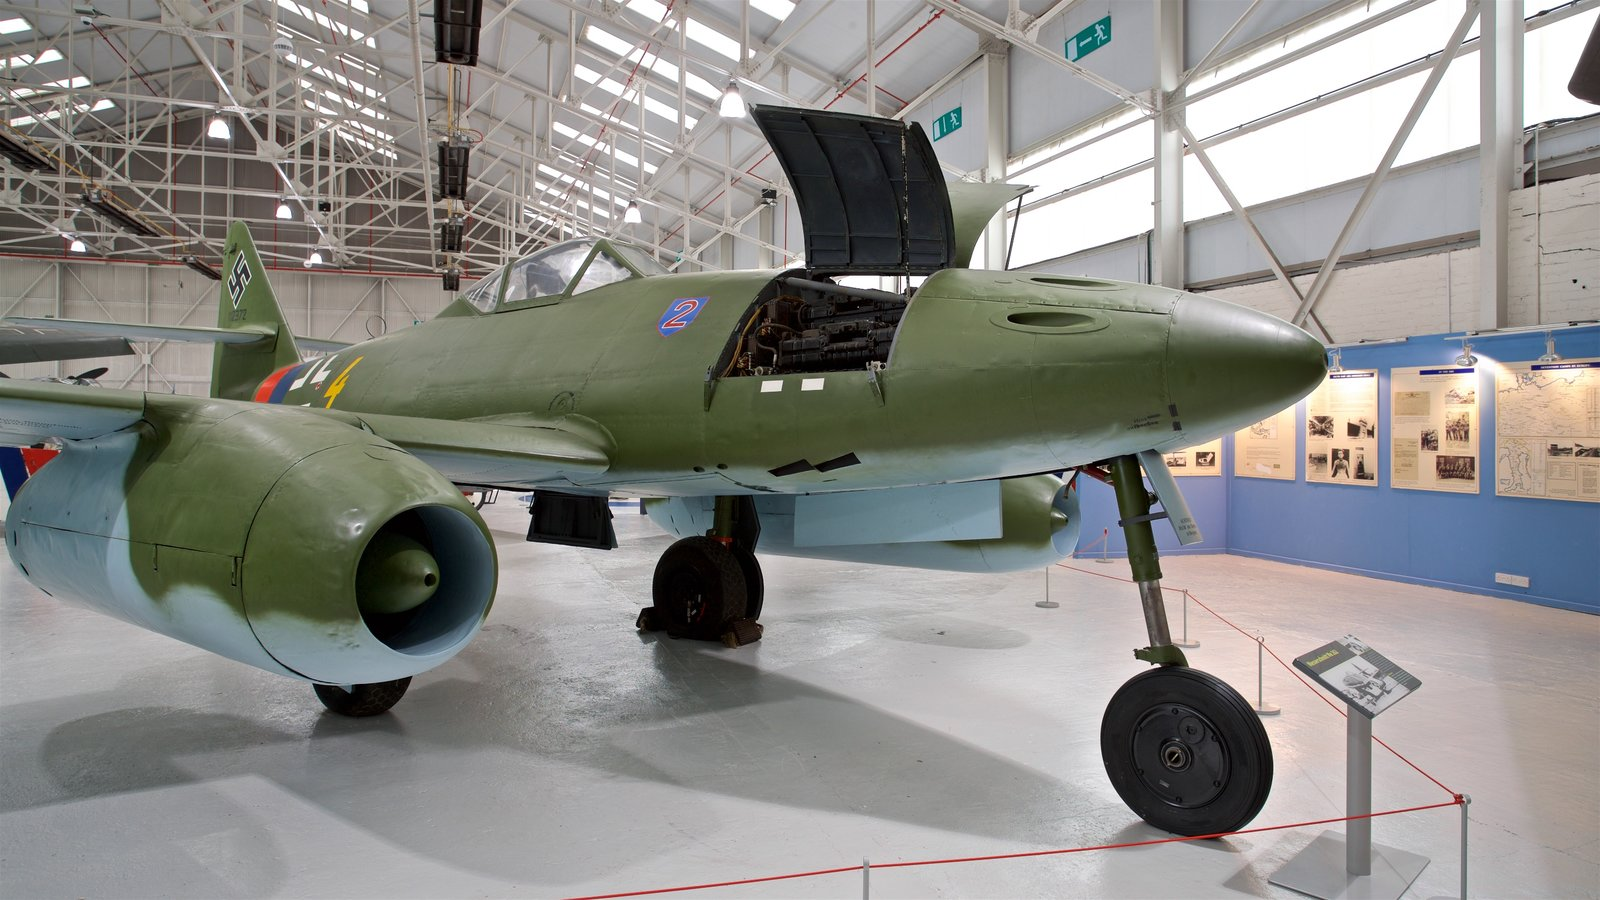 Cosford Royal Air Force Museum which includes interior views and aircraft